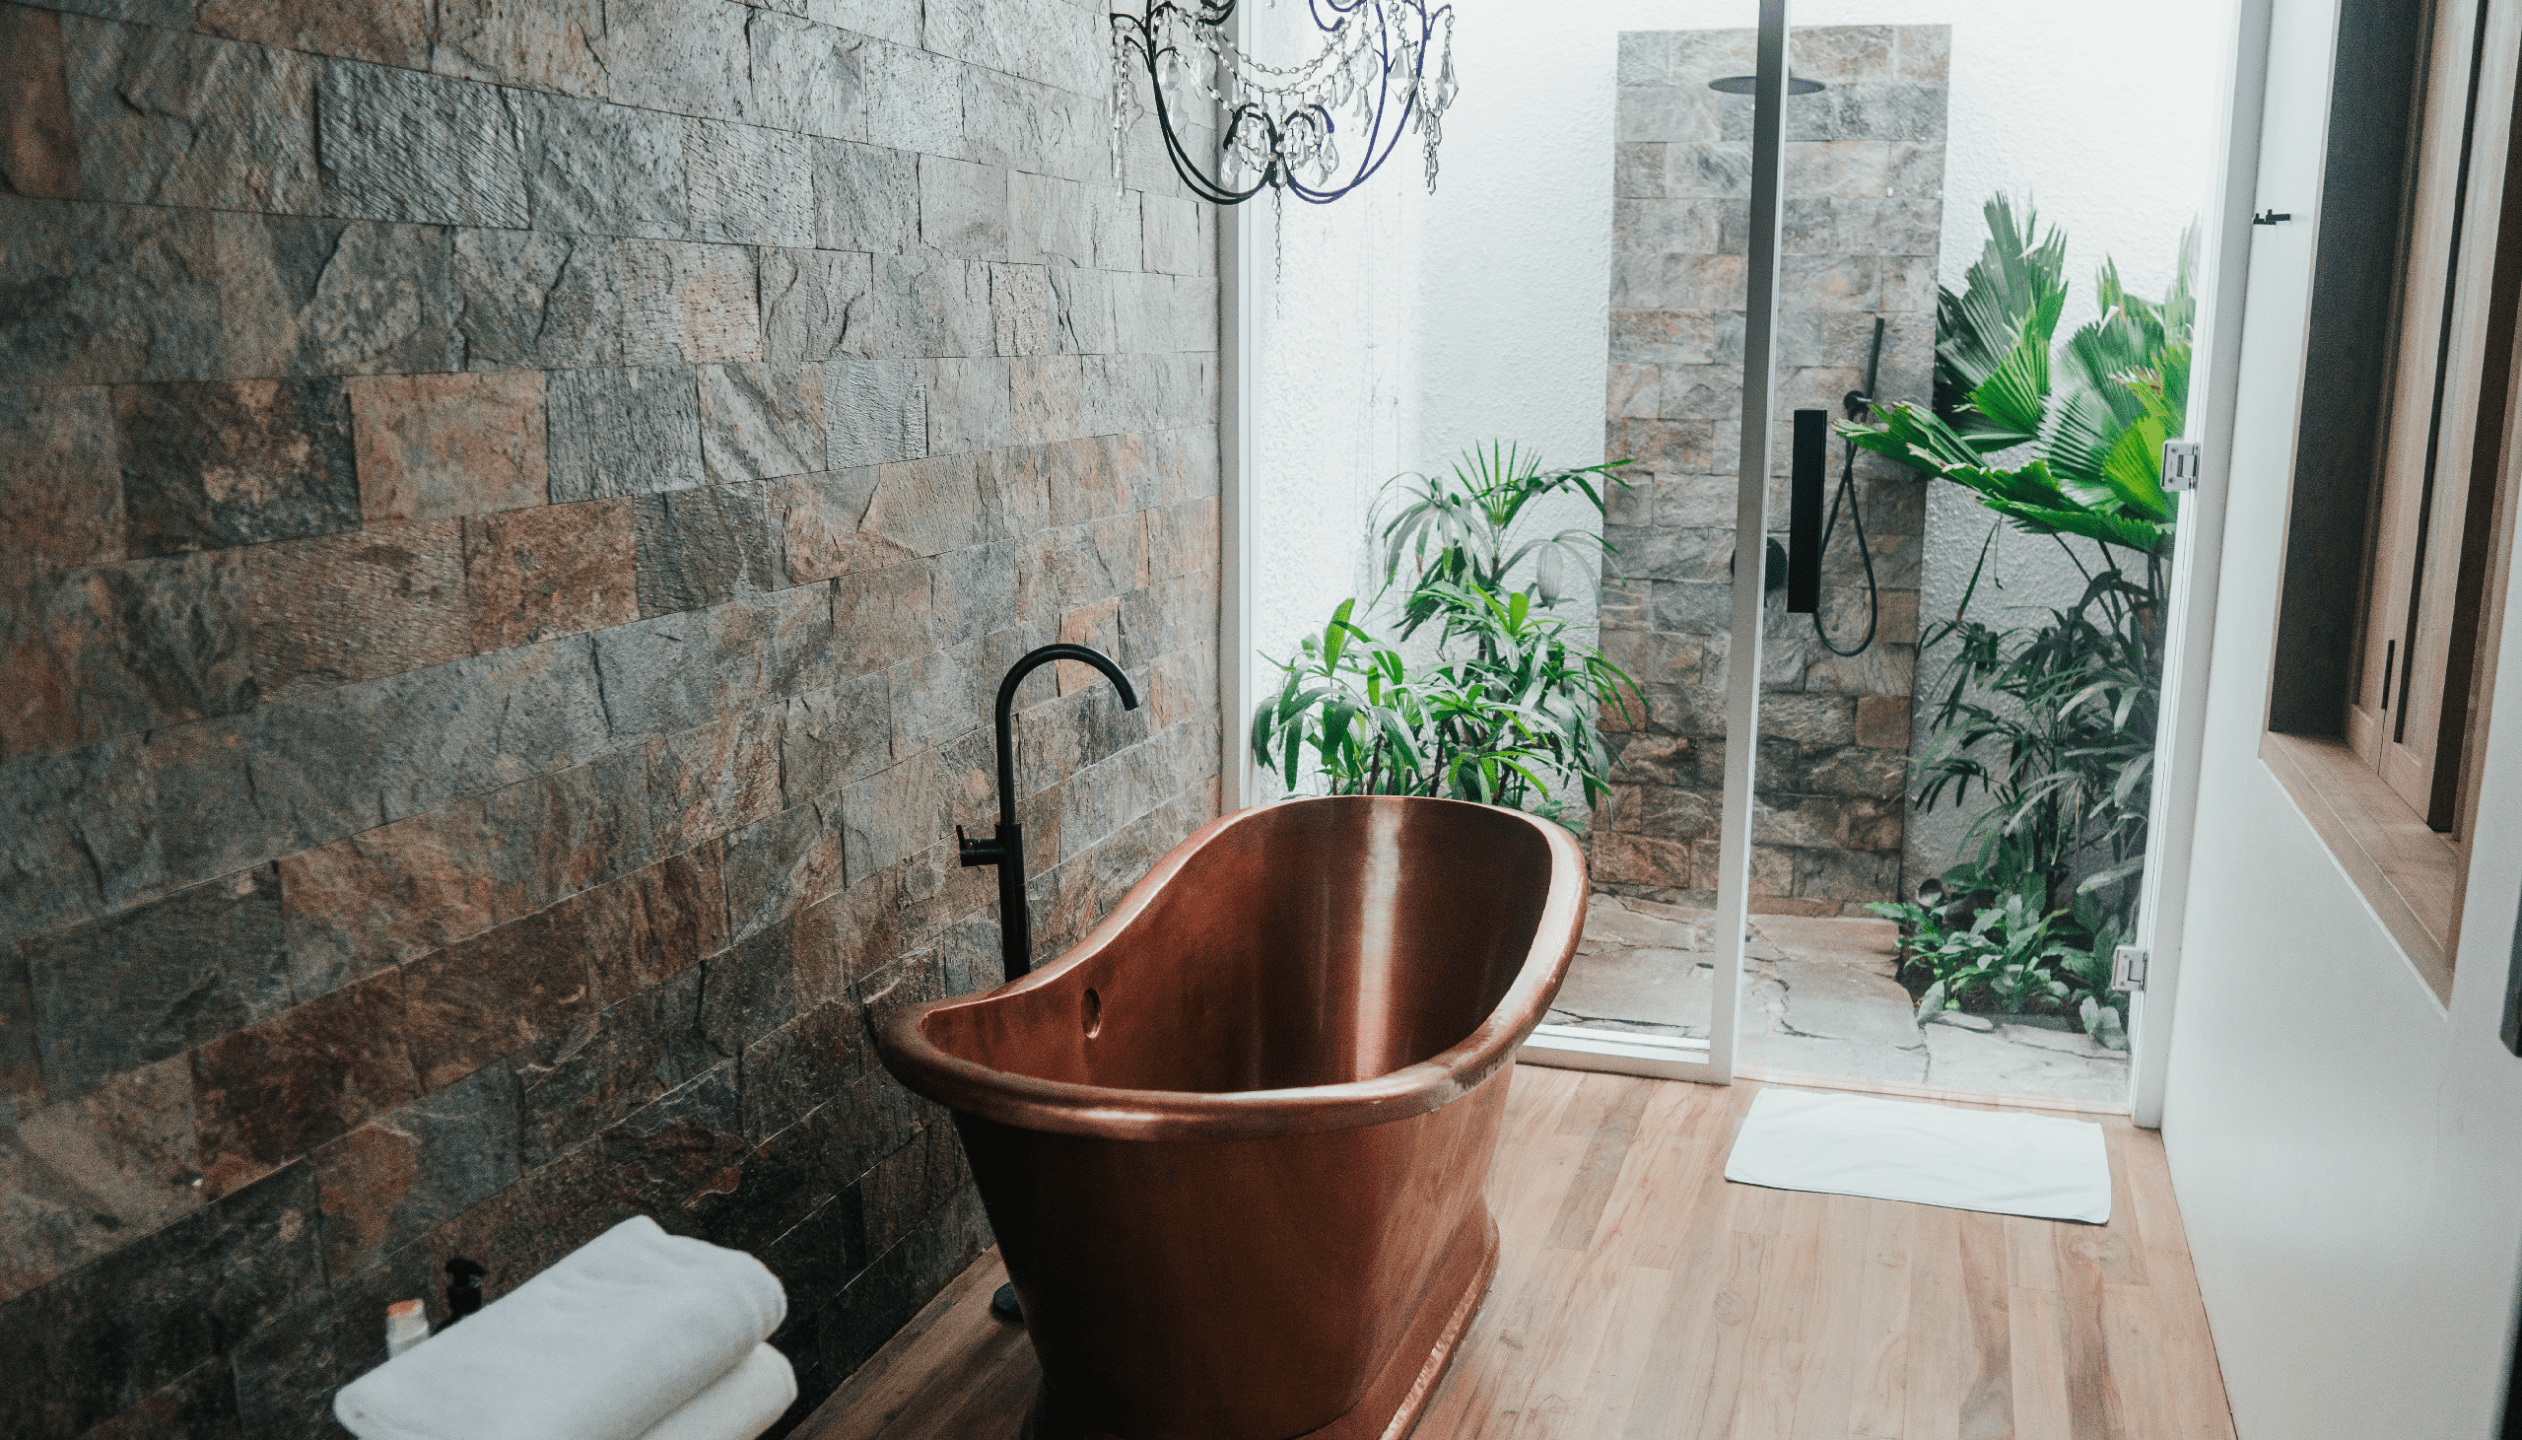 A copper freestanding bath tub in front of the patio door